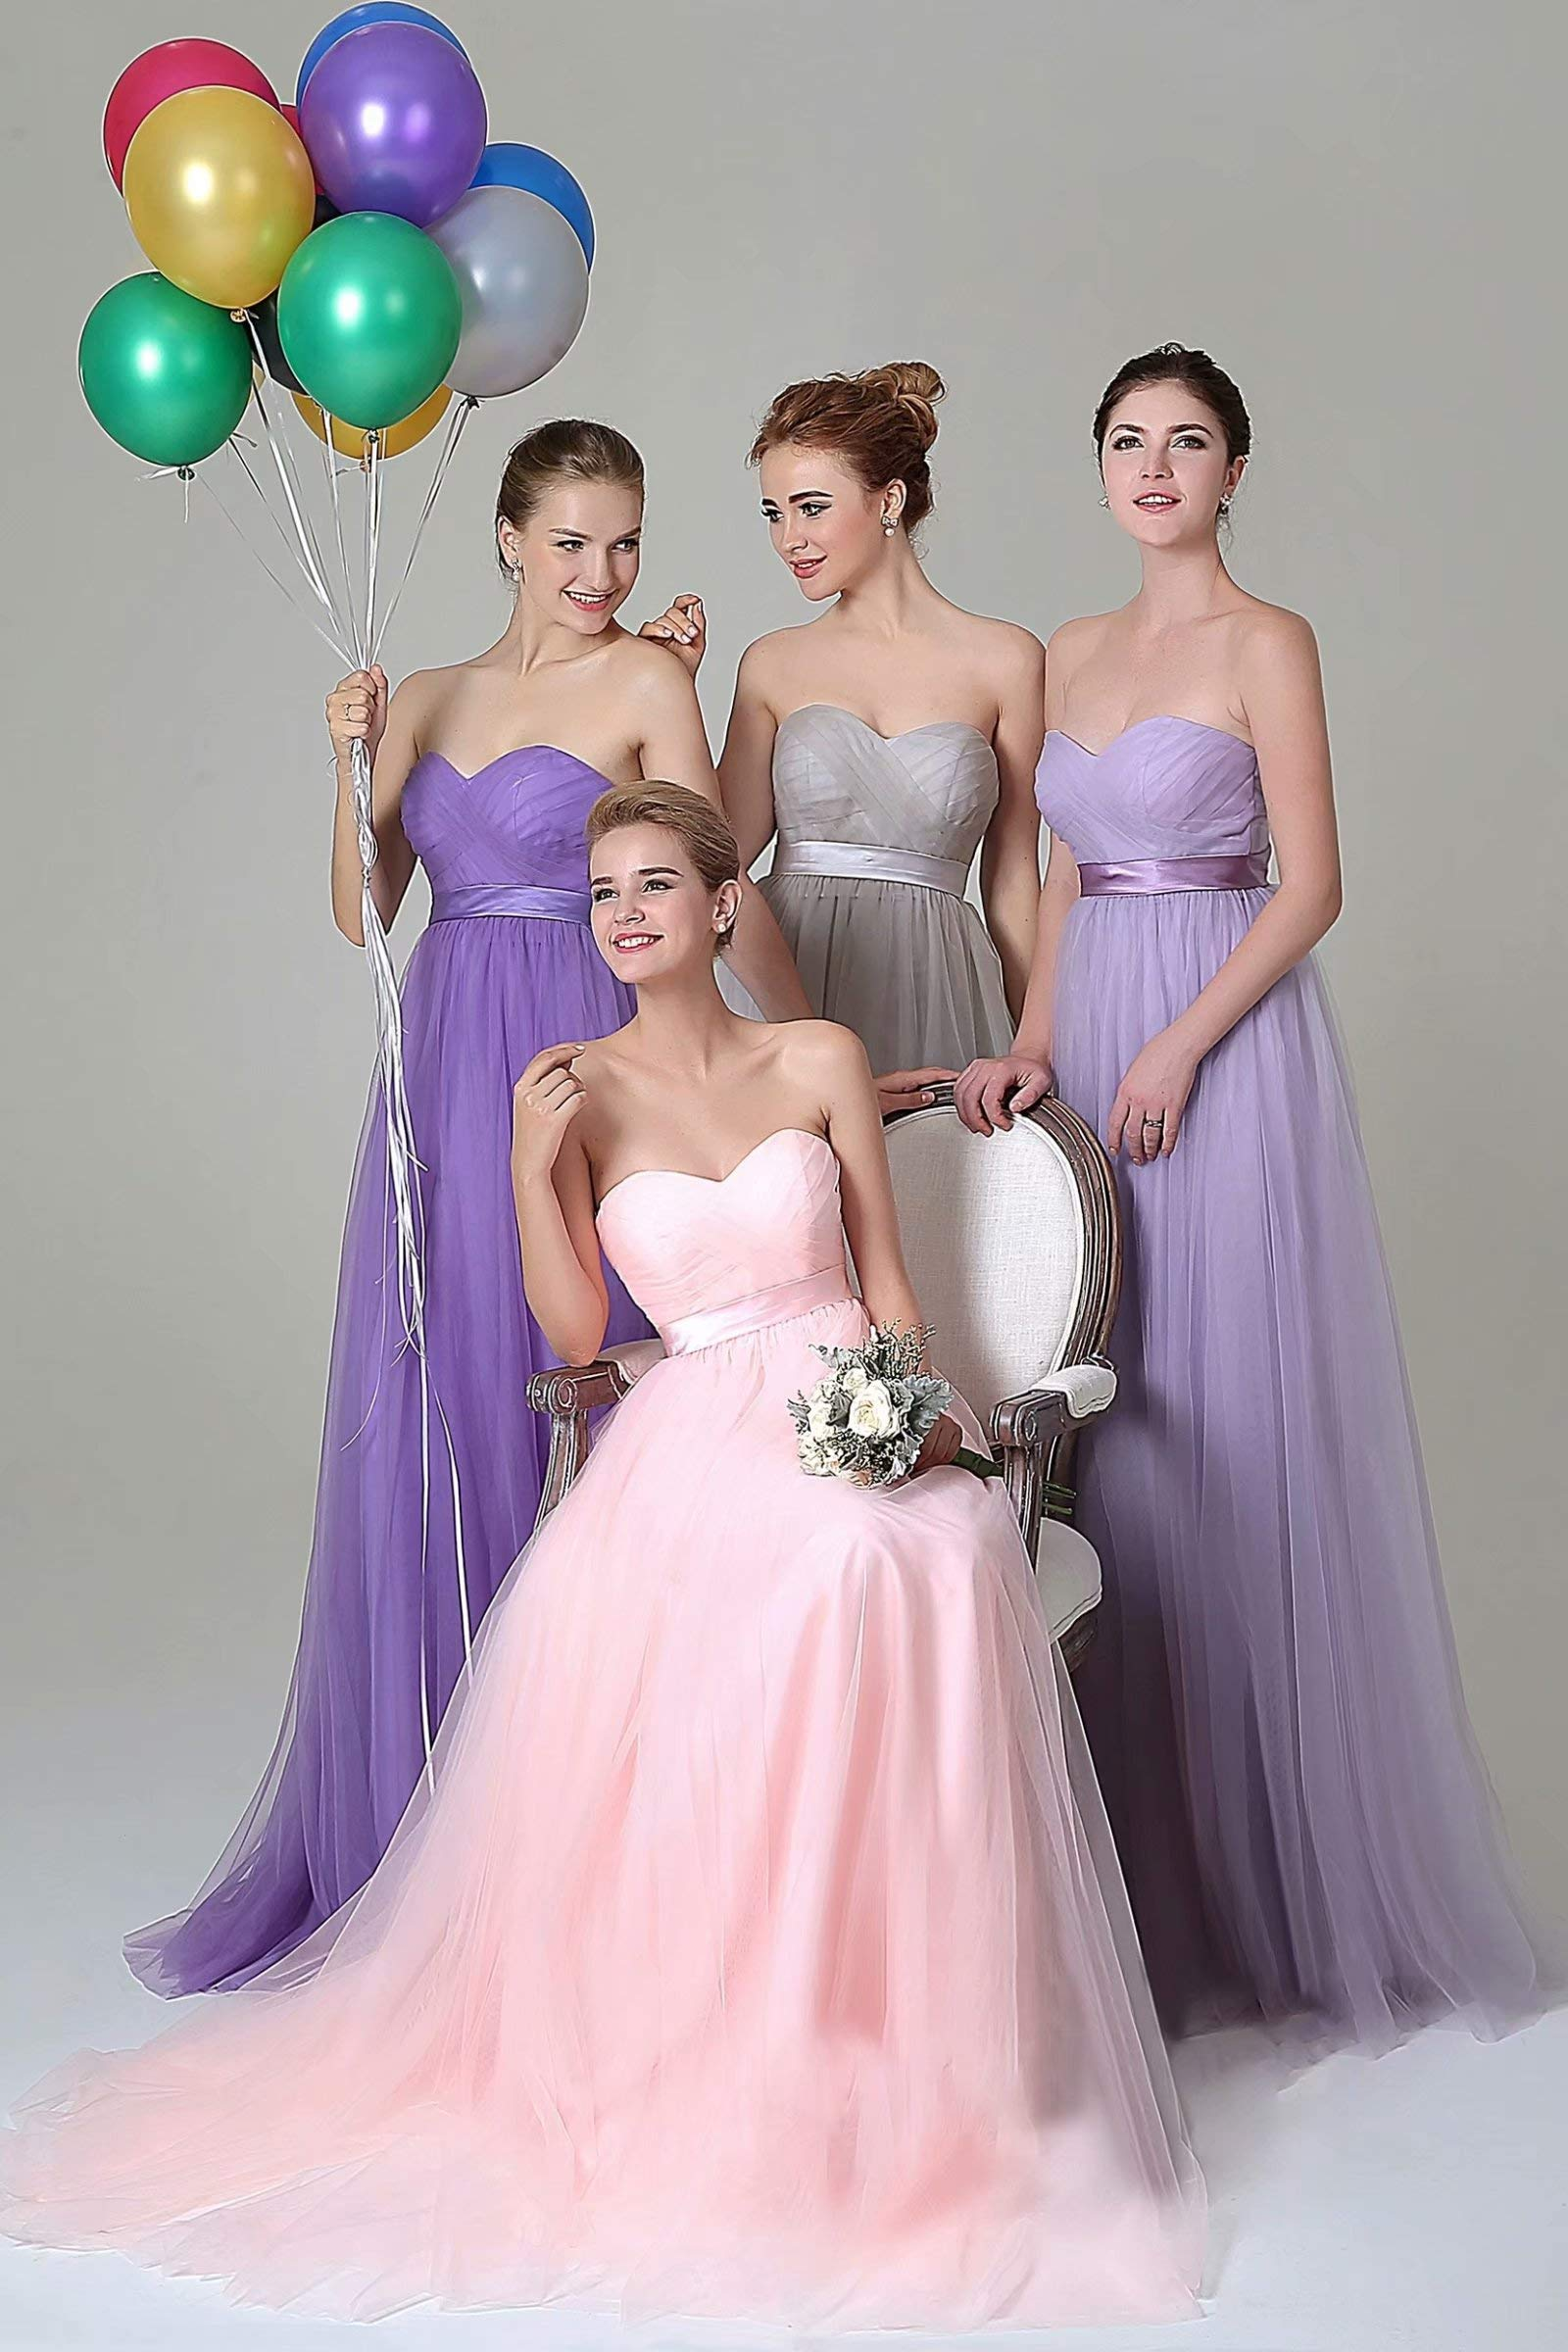 100% authentic exceptional range of styles and colors pick up NaXY Womens Strepless Tulle Convertible Bridesmaid Dresses Long 2019 Navy